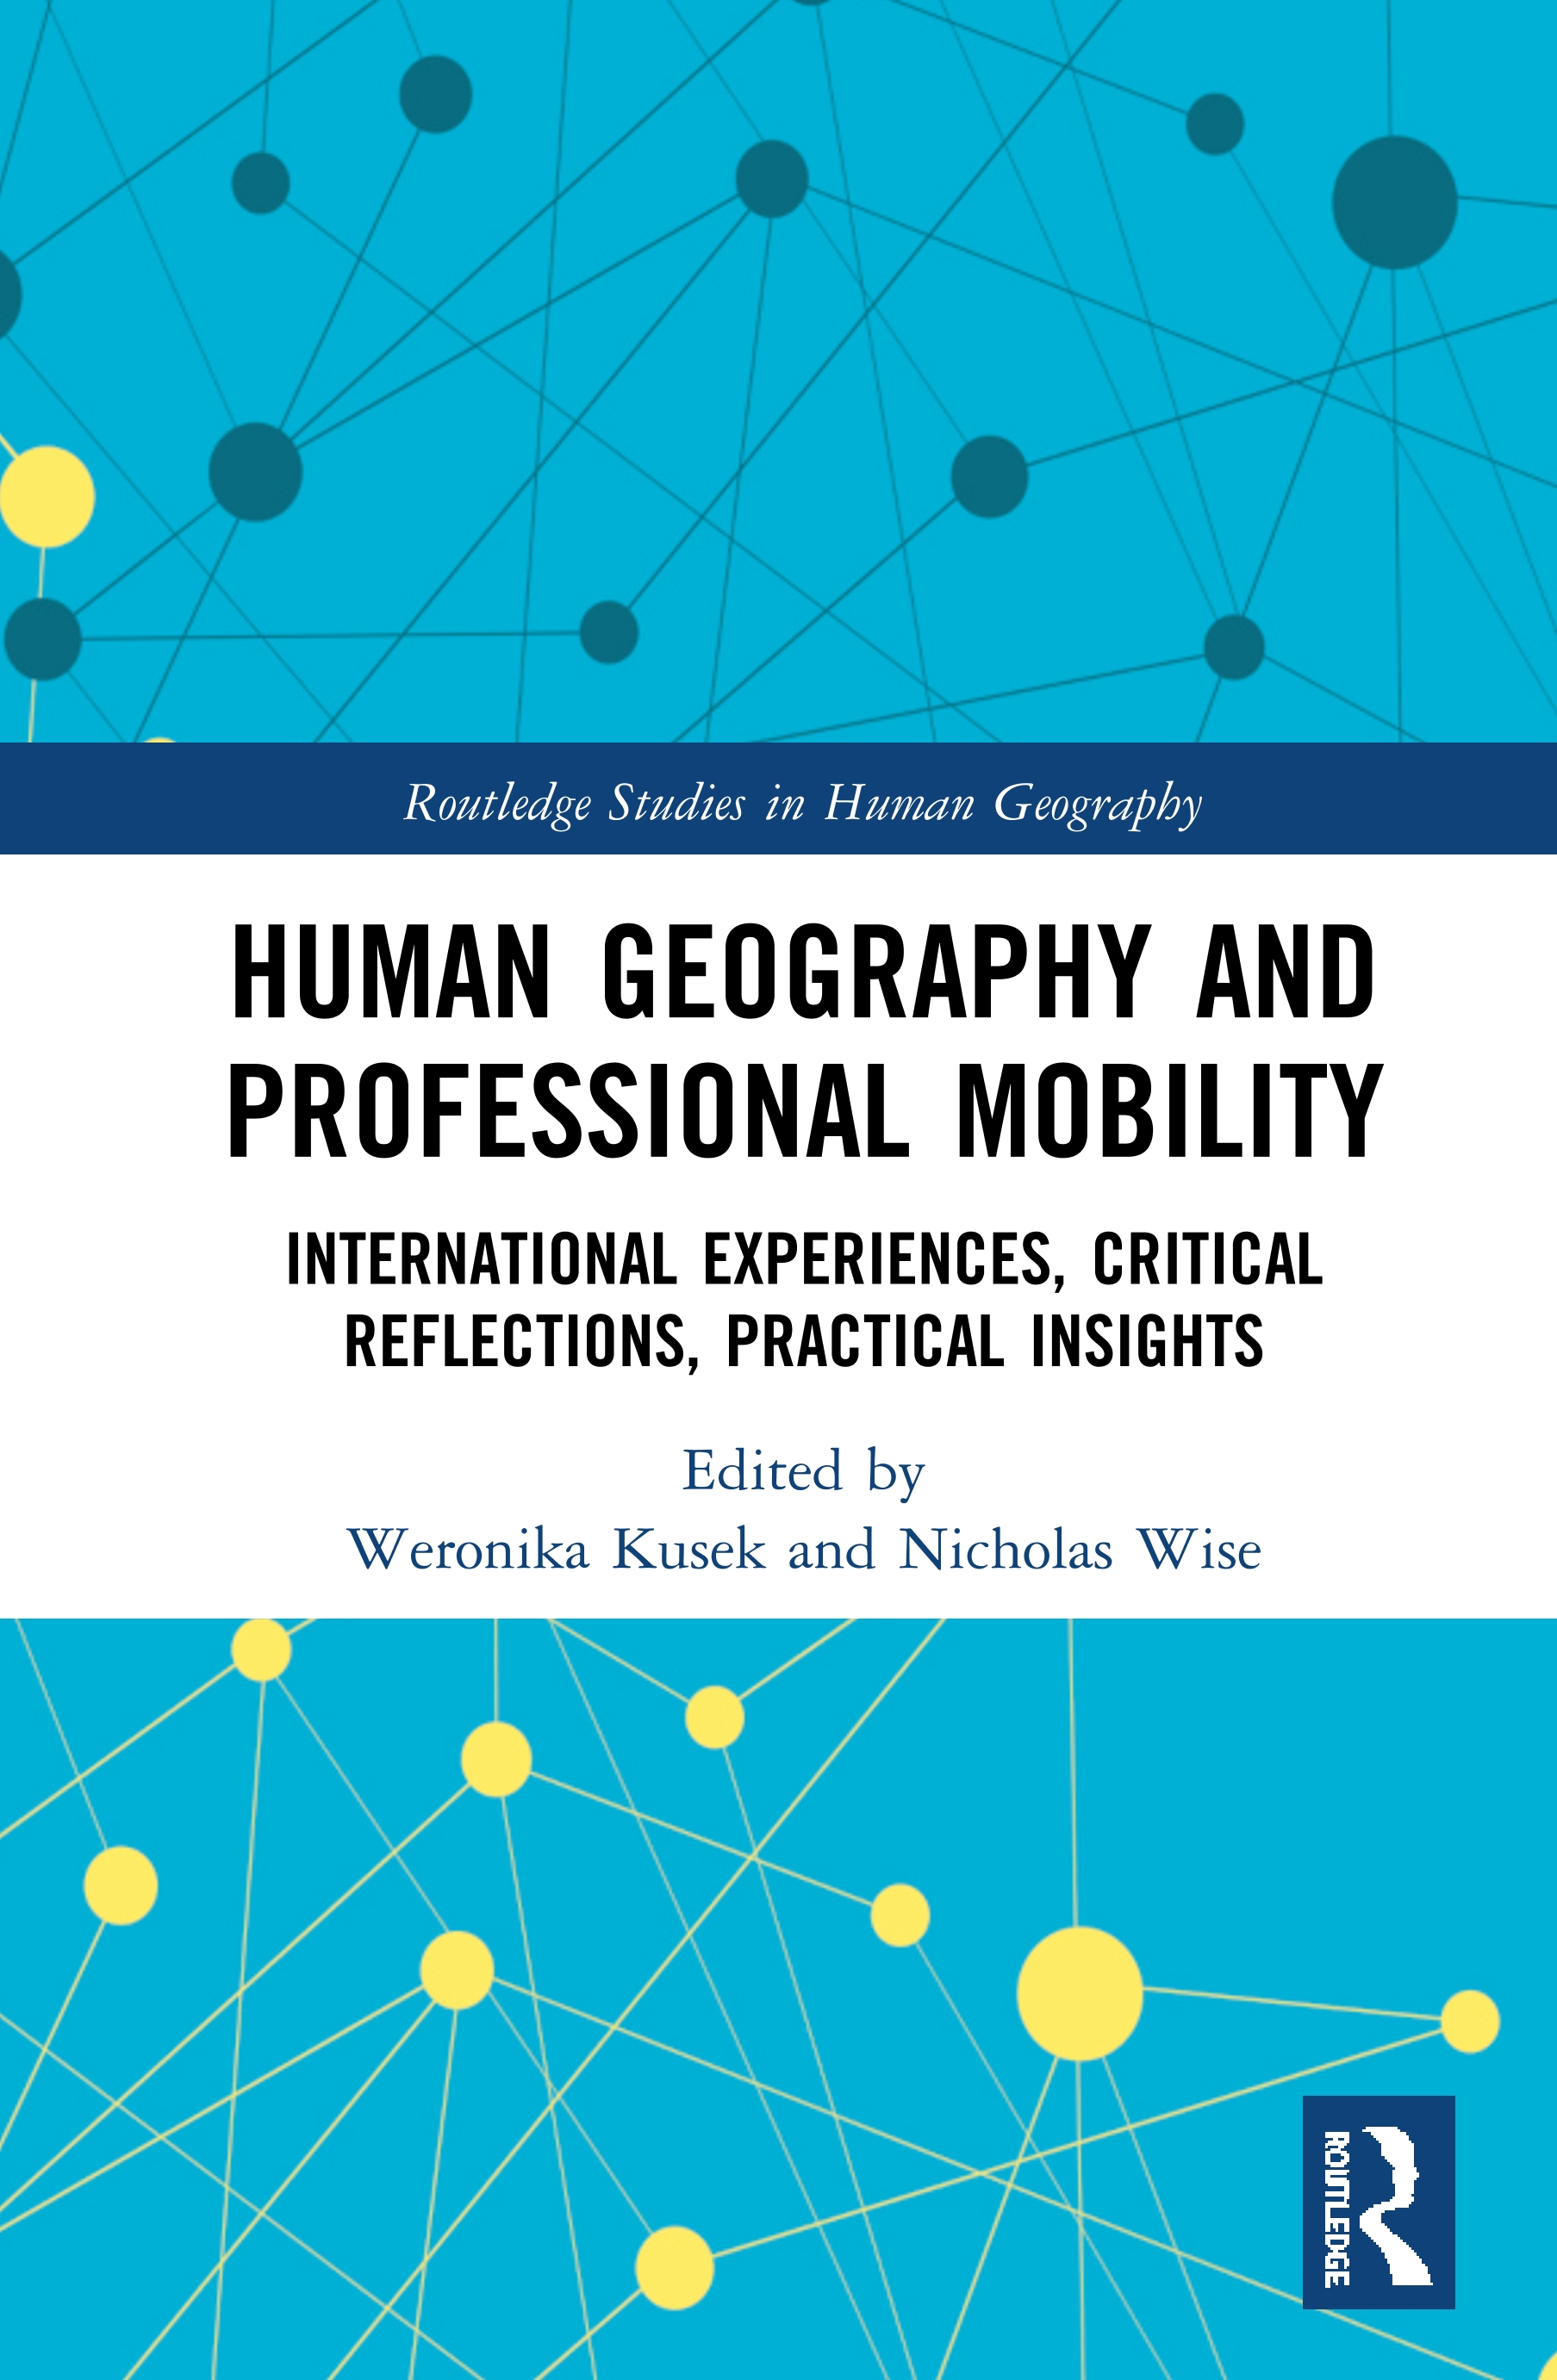 Human Geography and Professional Mobility: International Experiences, Critical Reflections, Practical Insights, 1st Edition (Hardback) book cover